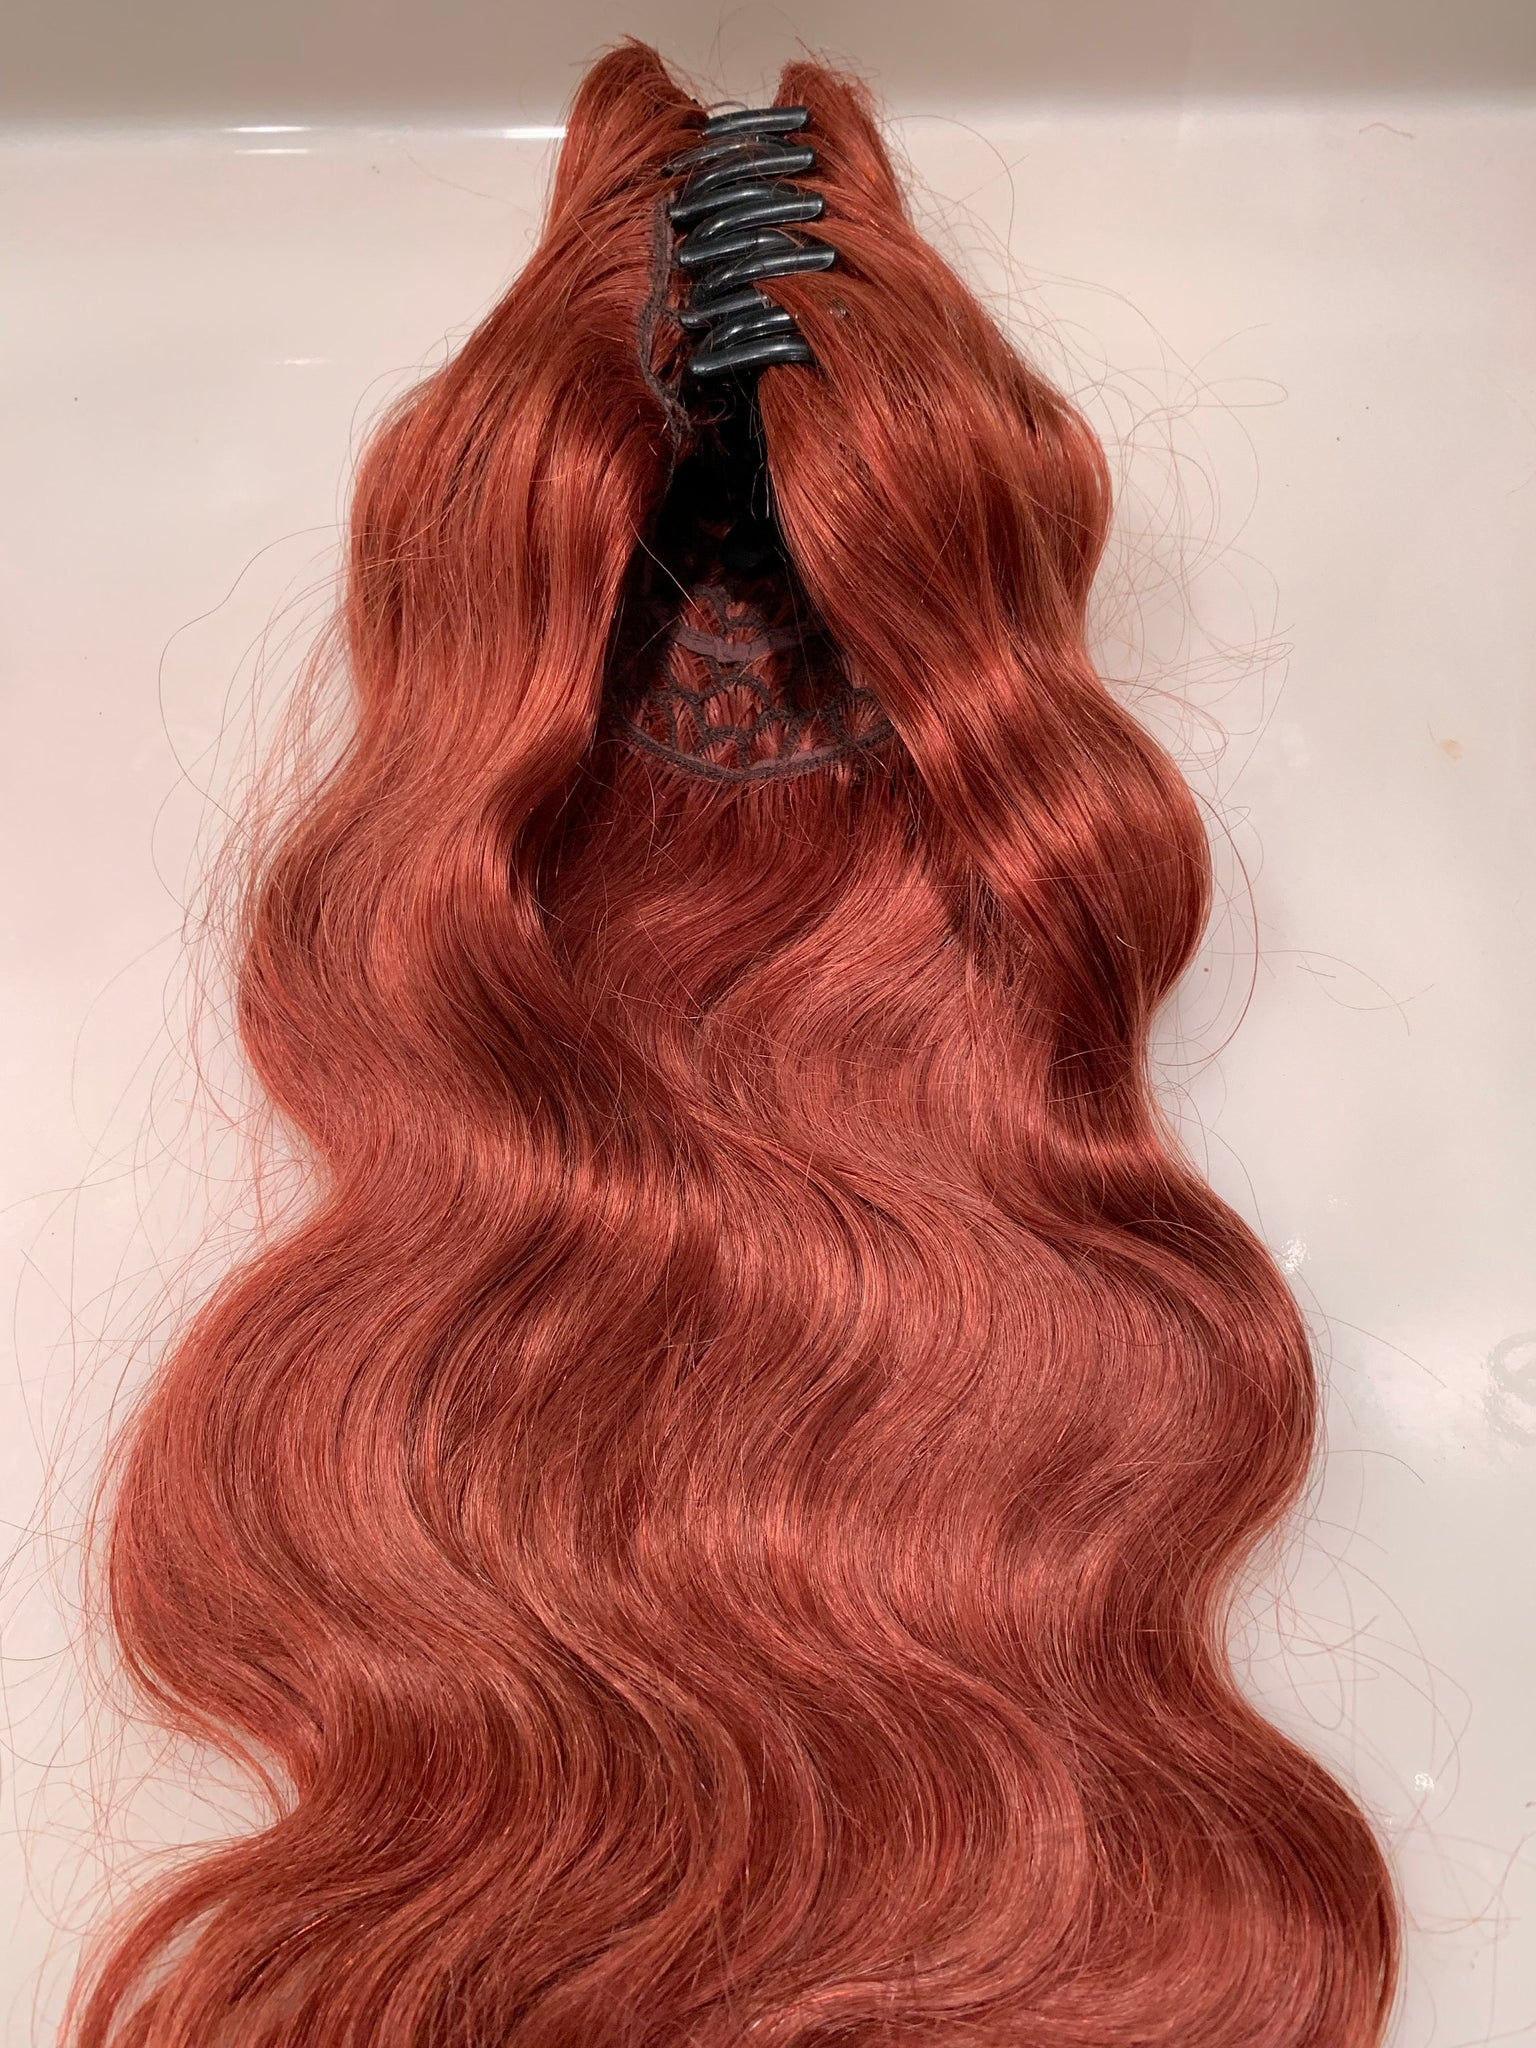 Human Hair Clip in Hair Extension Copper Auburn Red Pony Tail Fall Comb Claw